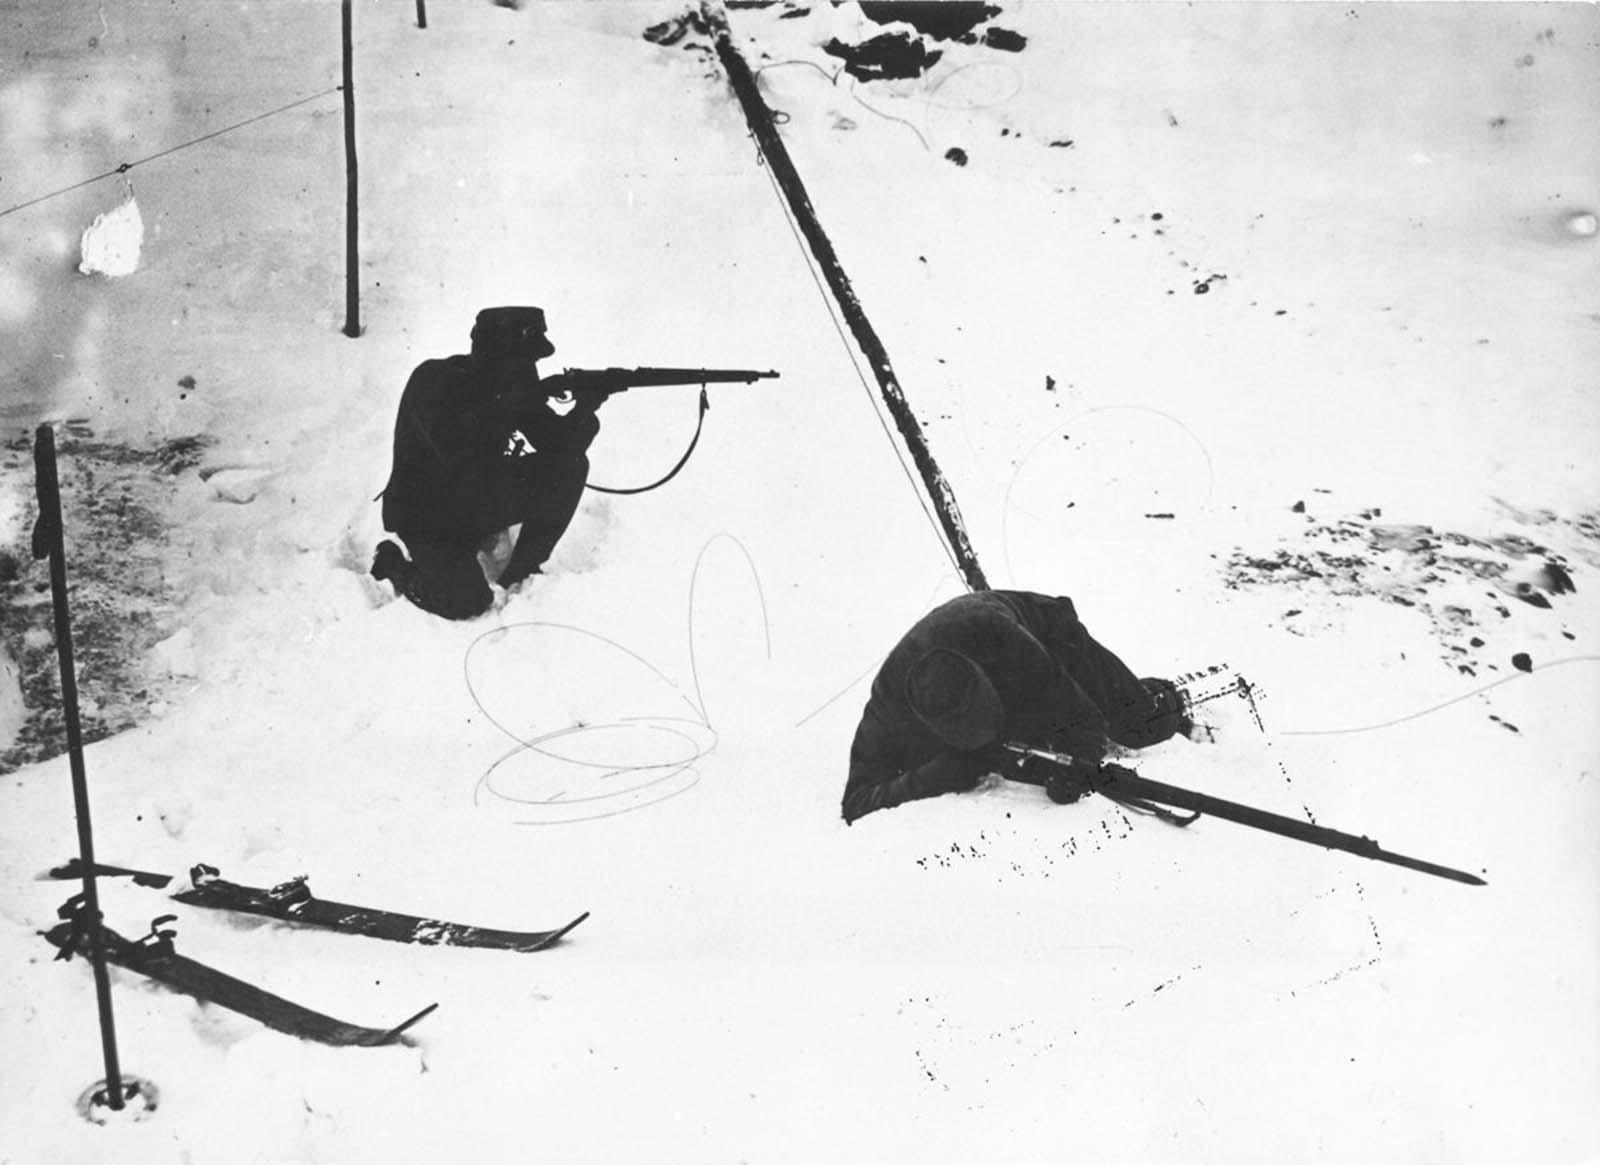 A ski patrol in combat on Monte Cevedale. 1917.